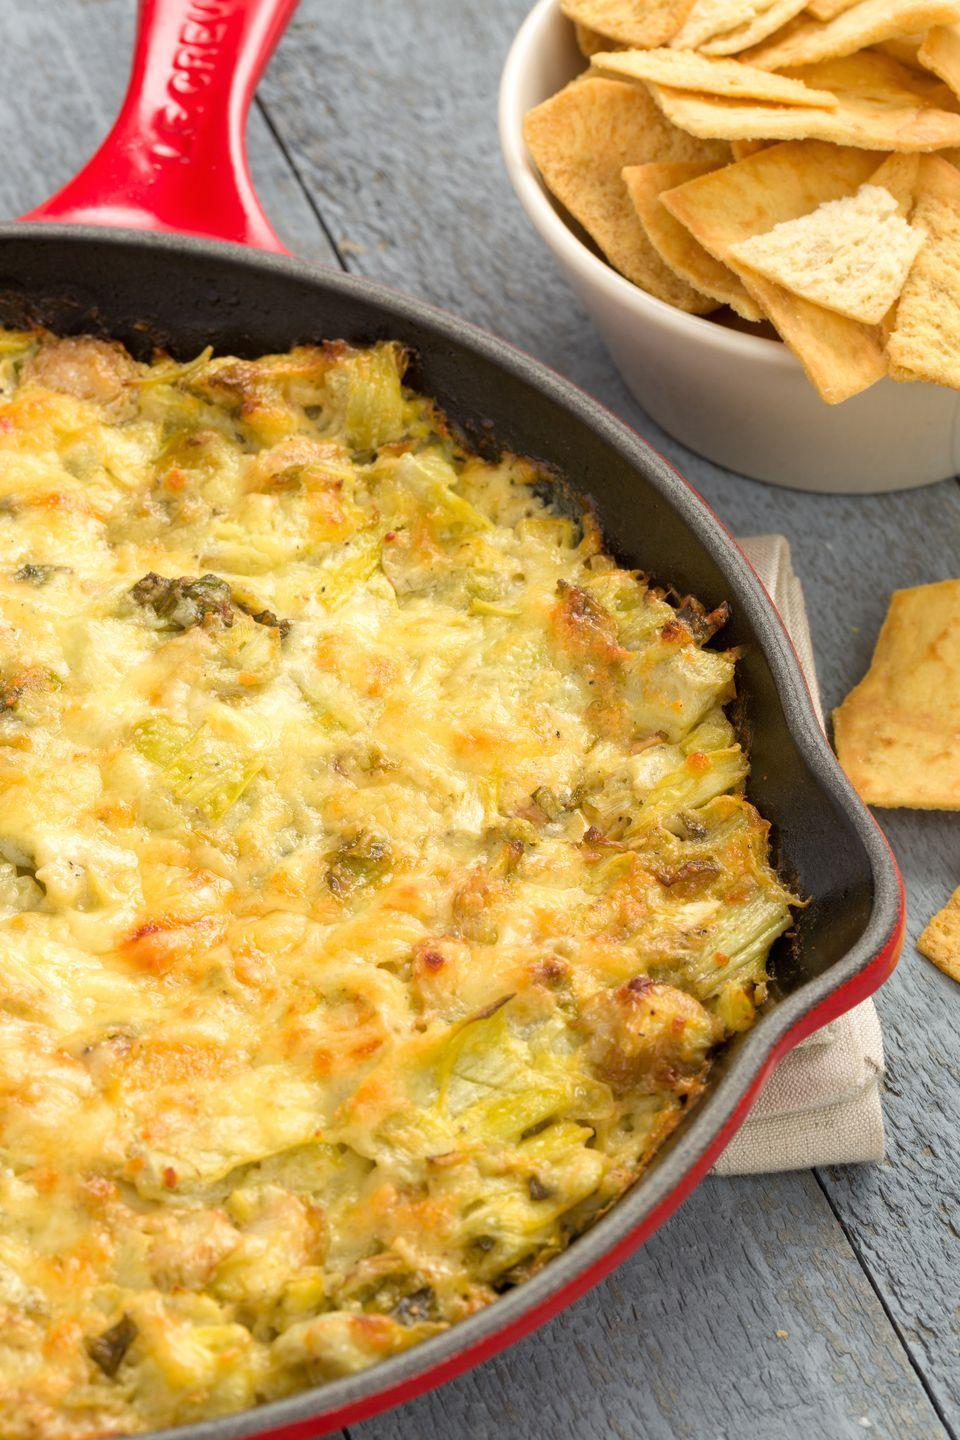 """<p>Replace spinach with brussels sprouts and you've taken your basic dip to the next level.</p><p>Get the recipe from <a href=""""https://www.redbookmag.com/holiday-recipes/thanksgiving/recipes/a44805/cheesy-brussels-sprout-artichoke-dip-recipe/"""" rel=""""nofollow noopener"""" target=""""_blank"""" data-ylk=""""slk:Delish"""" class=""""link rapid-noclick-resp"""">Delish</a>.</p>"""